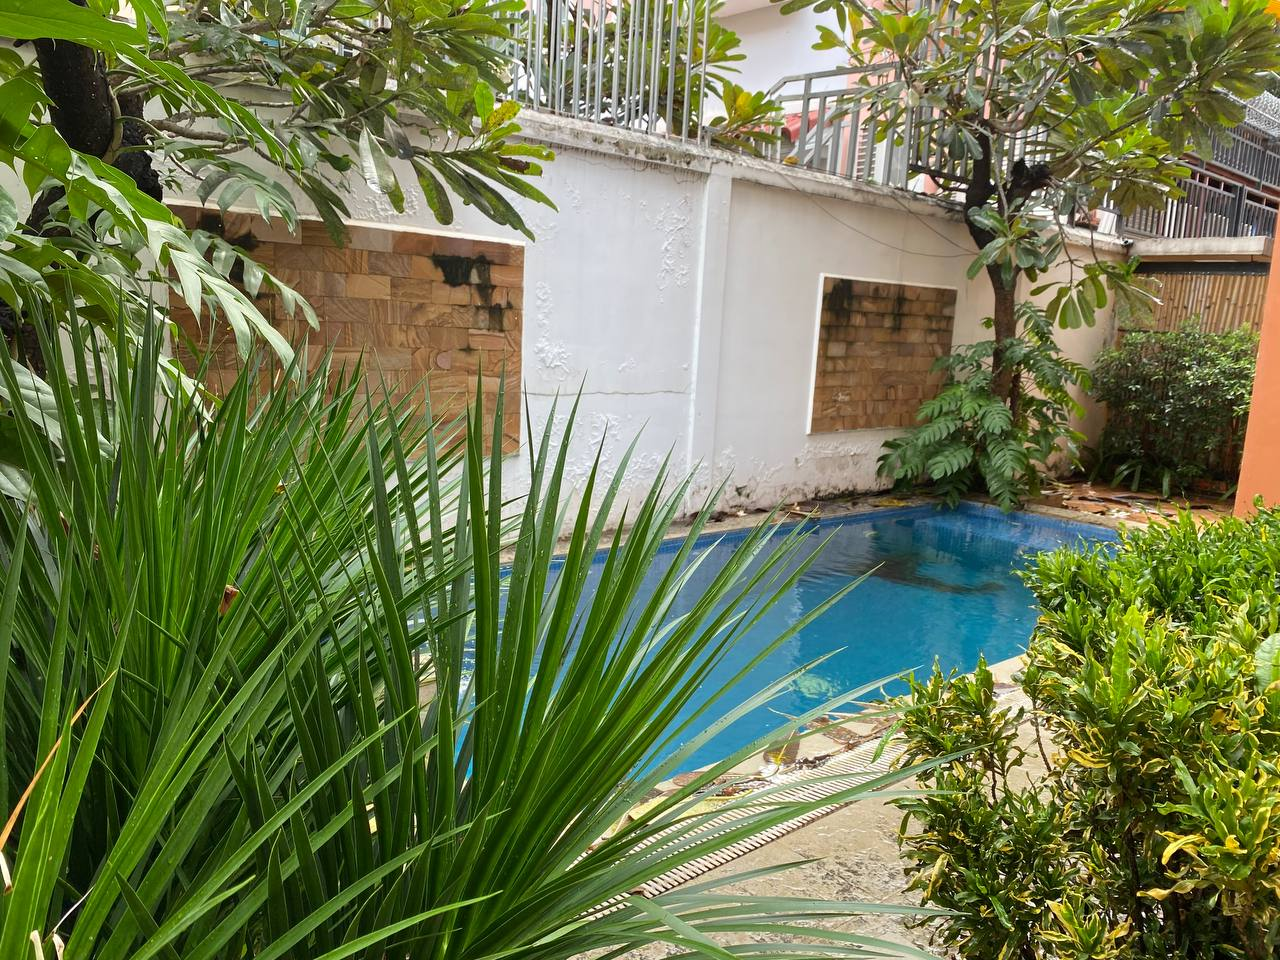 Villa 5 Bedrooms with swimming pool